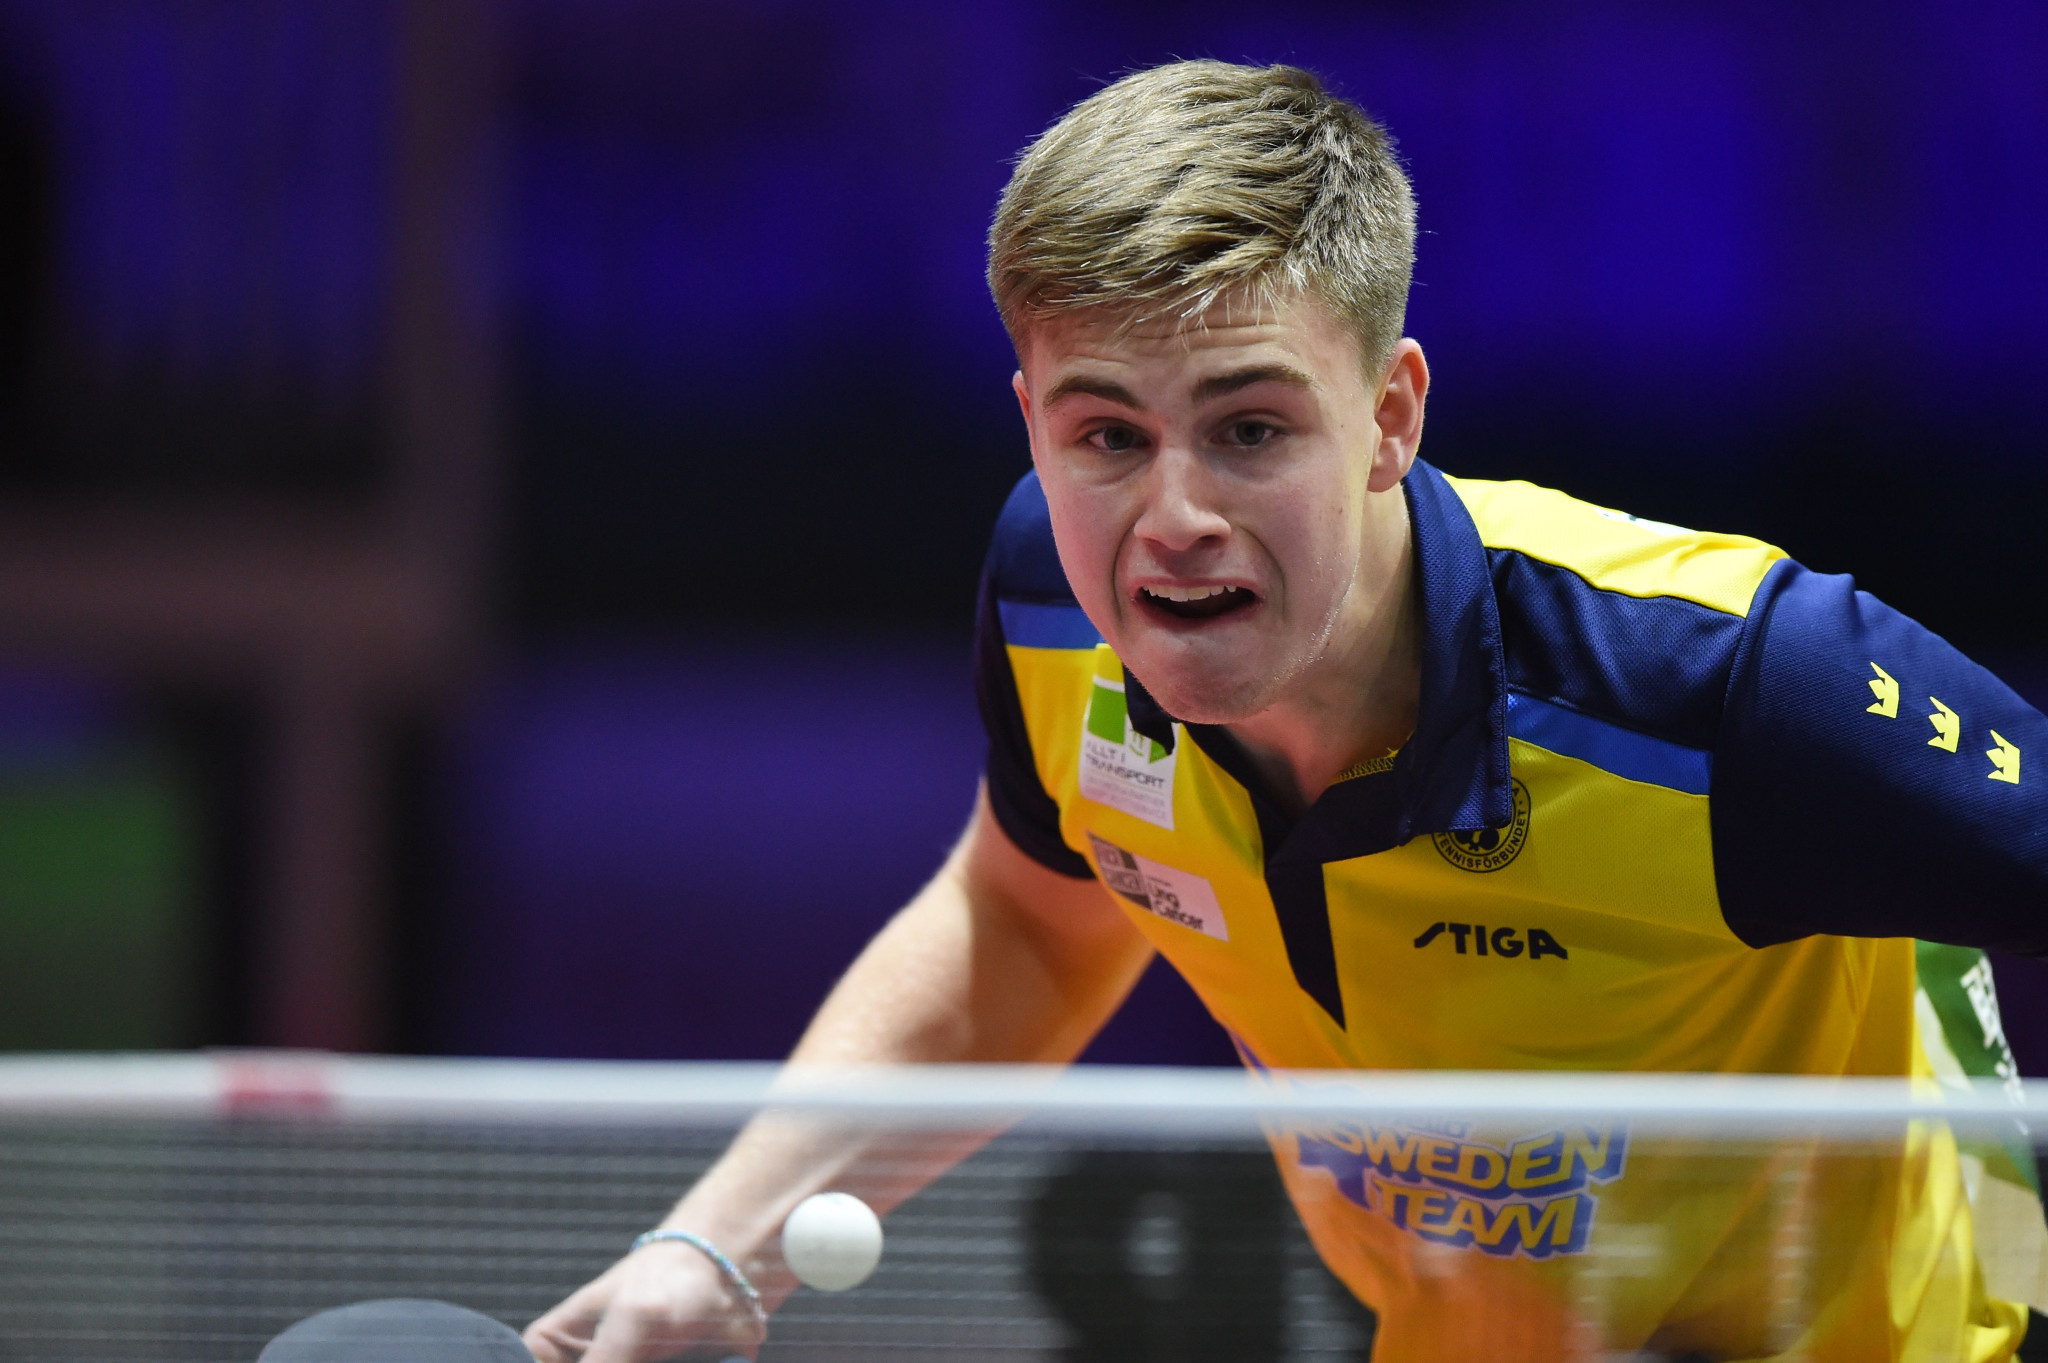 Sweden's Truls Moregard became the second-youngest player to win a WTT men's singles event as he beat Germany's Kilian Ort in the final ©Getty Images